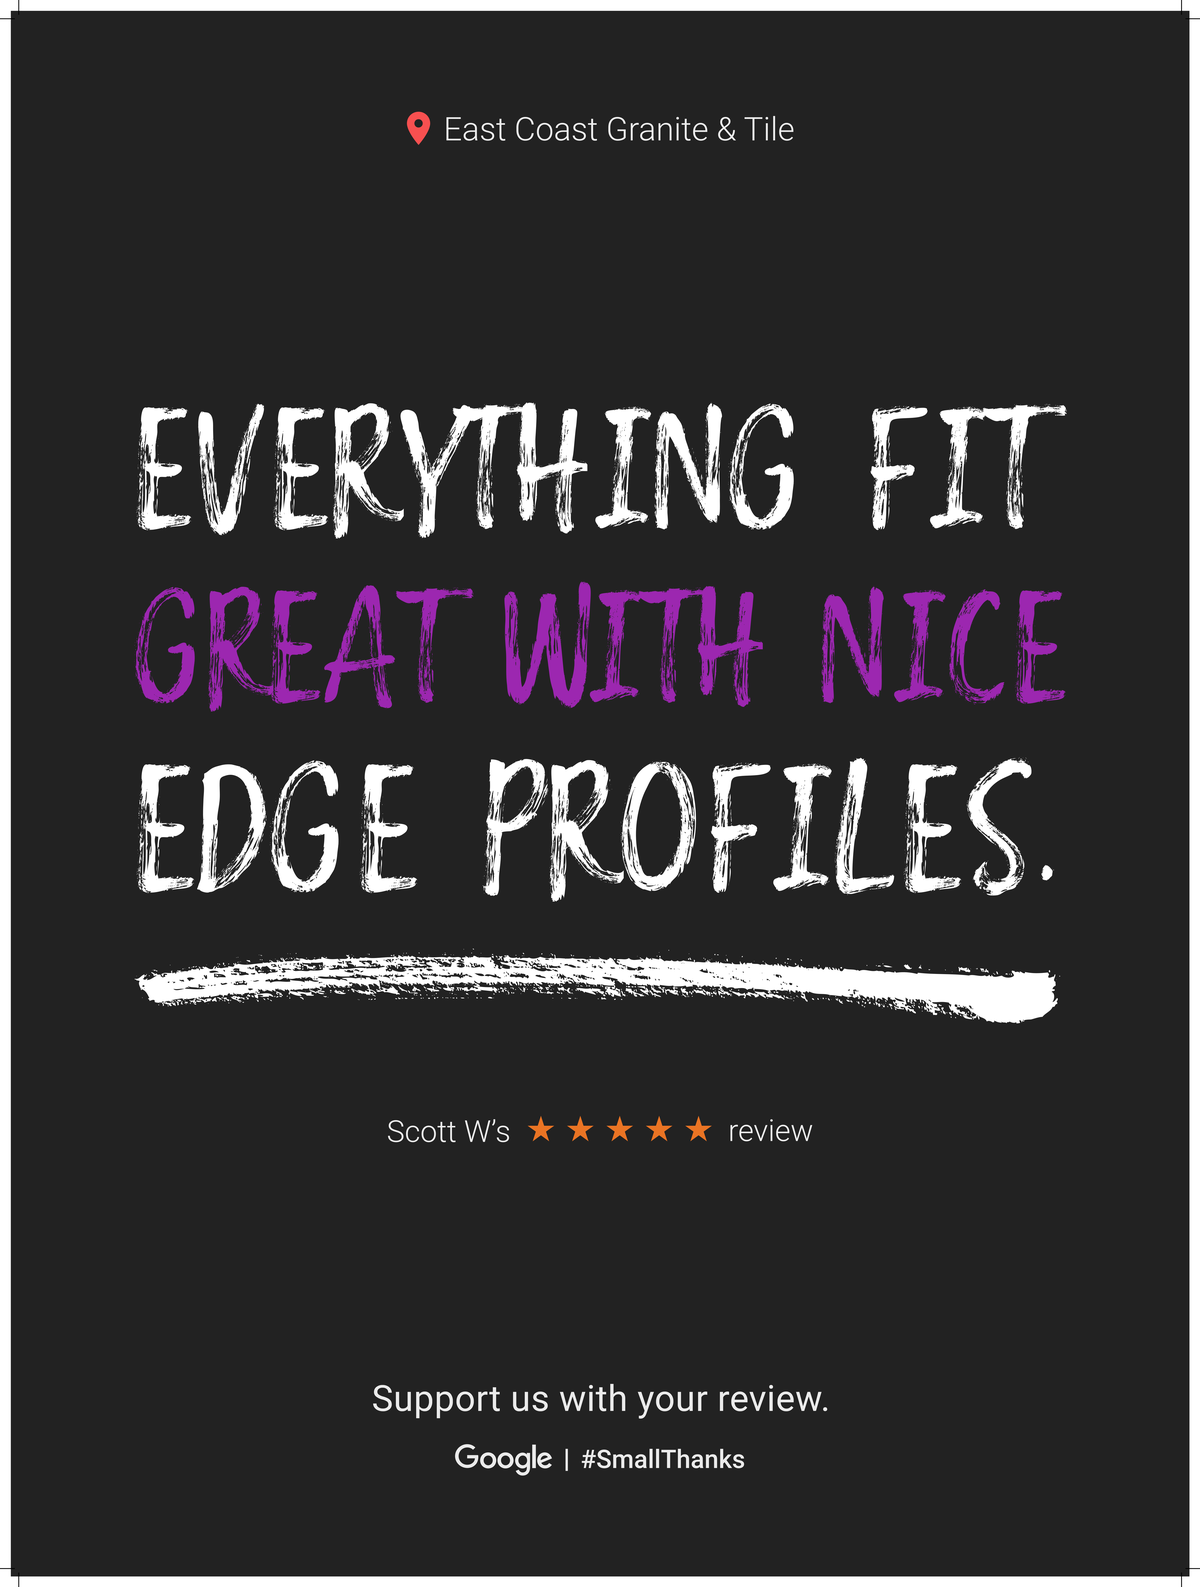 Google Review Greenville from Scott W - Everything fit great with nice edge profiles